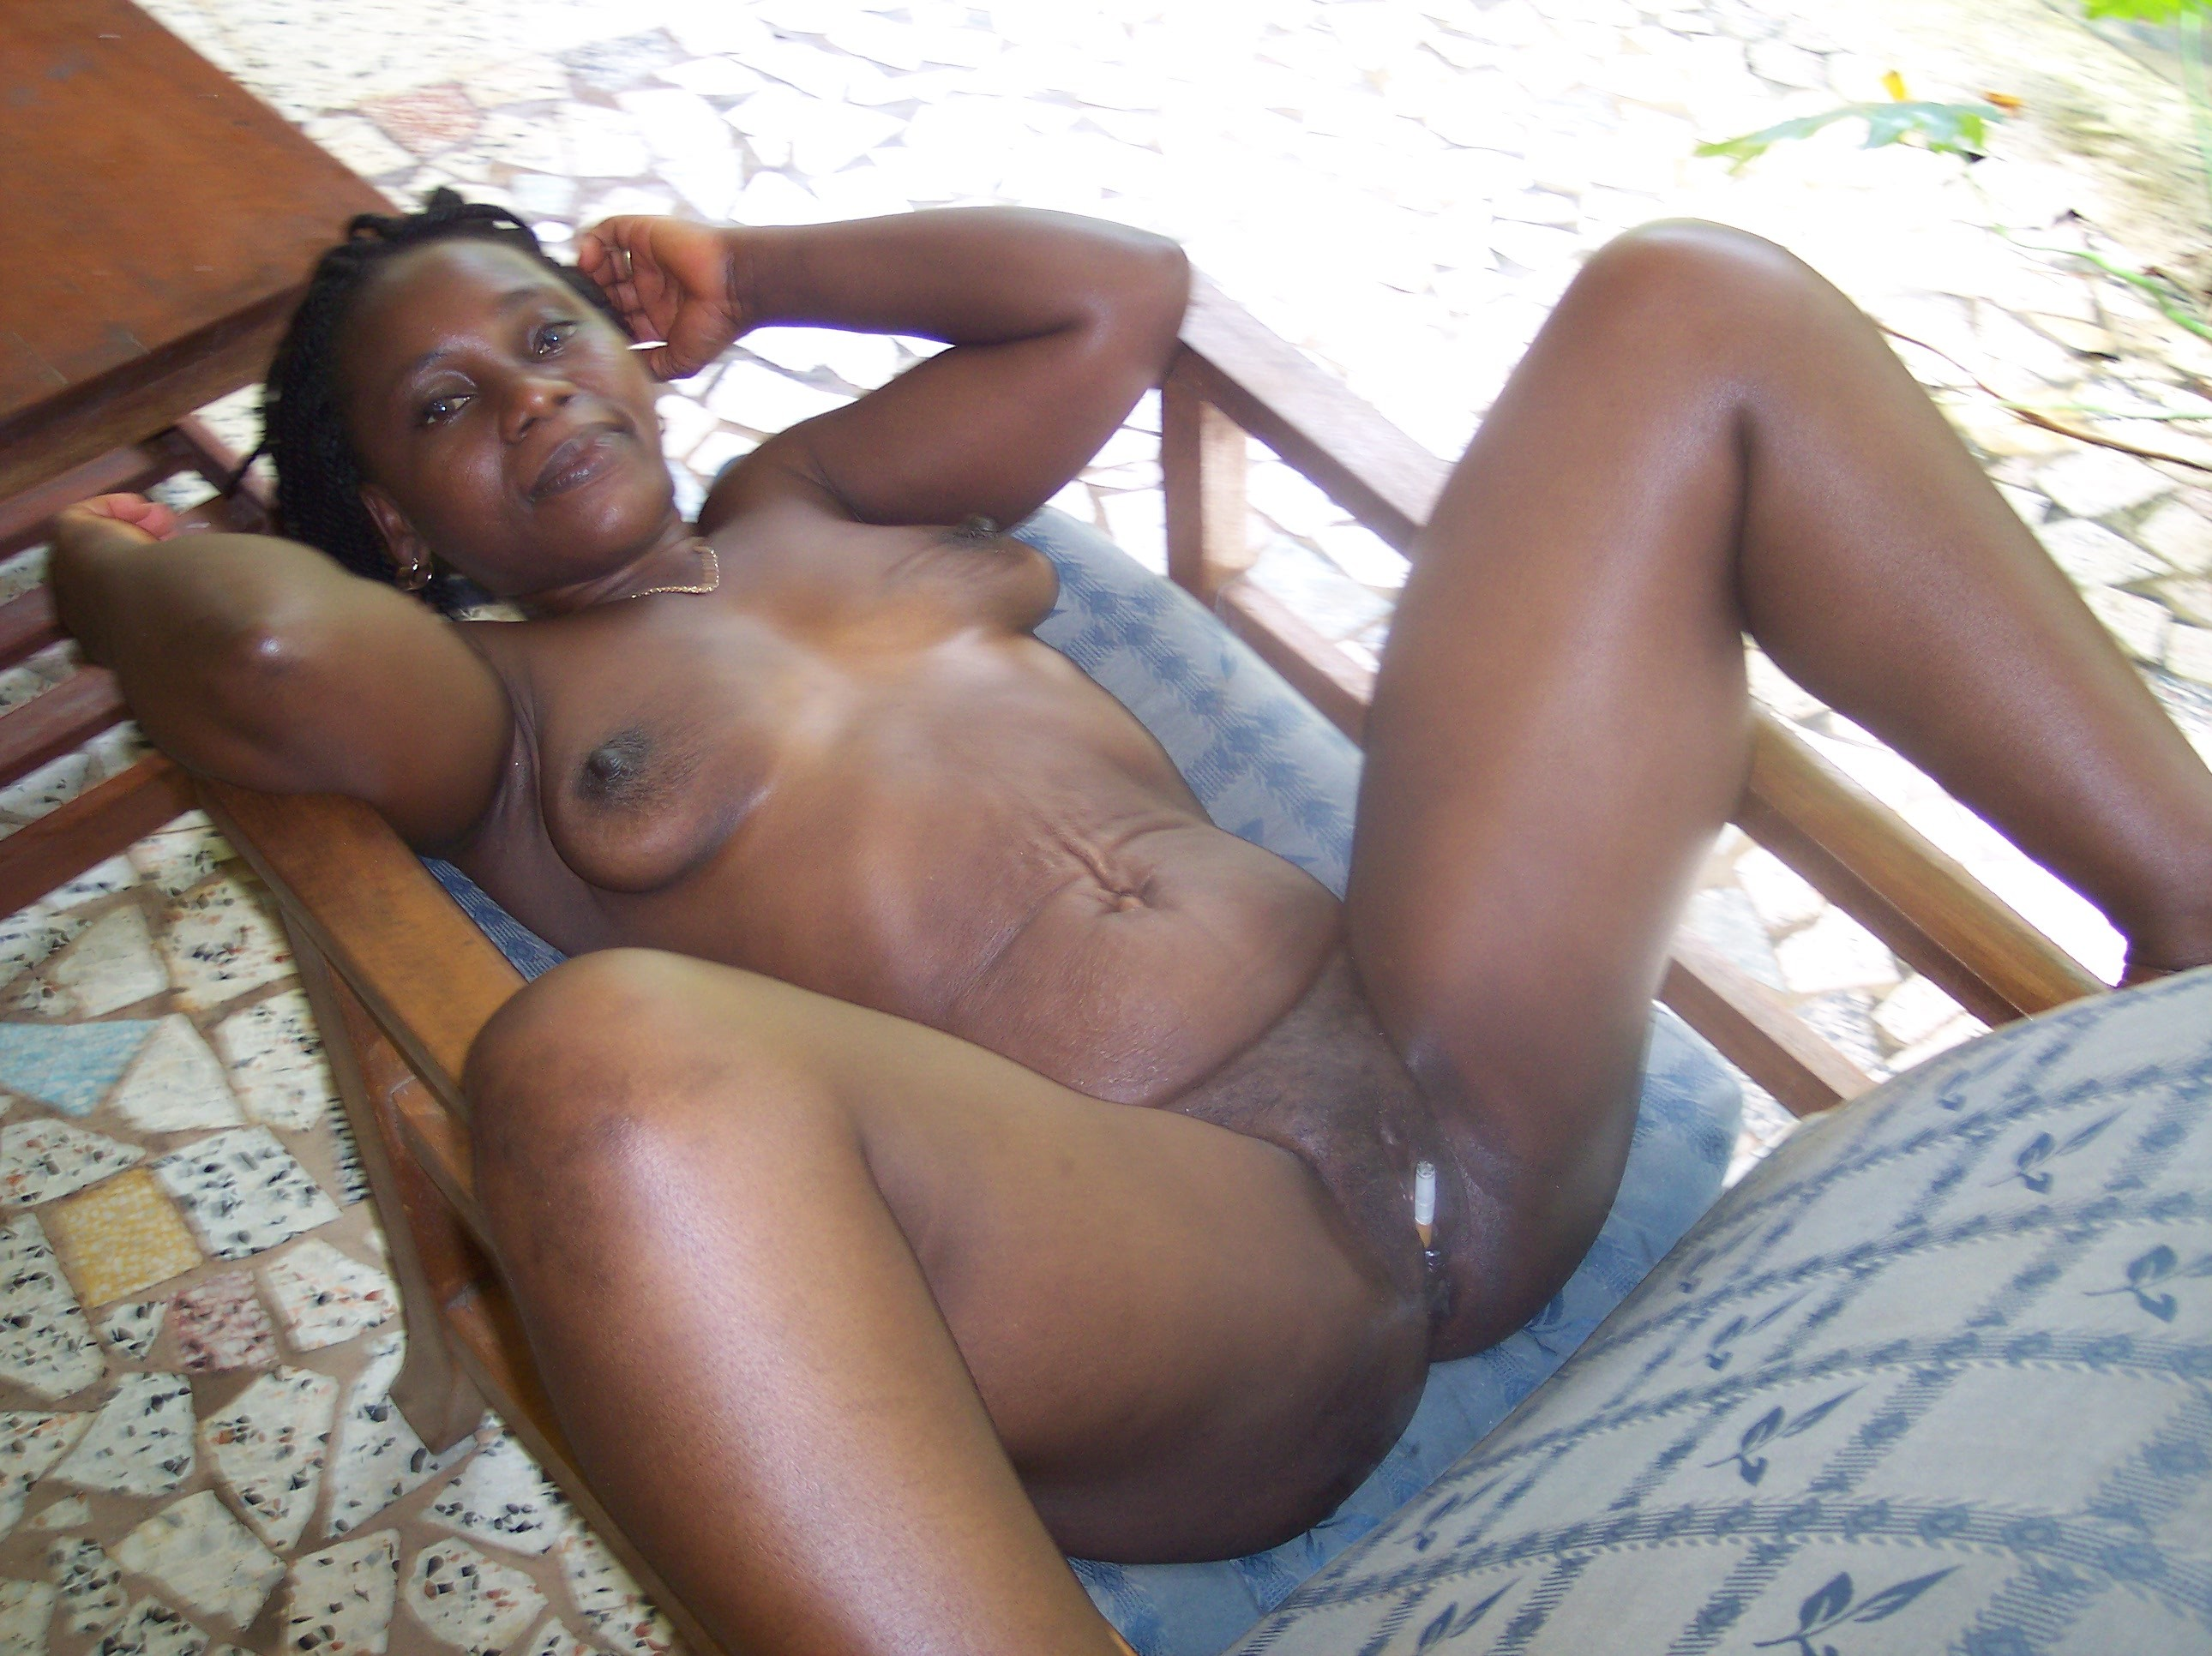 Nigeria sex nude photos